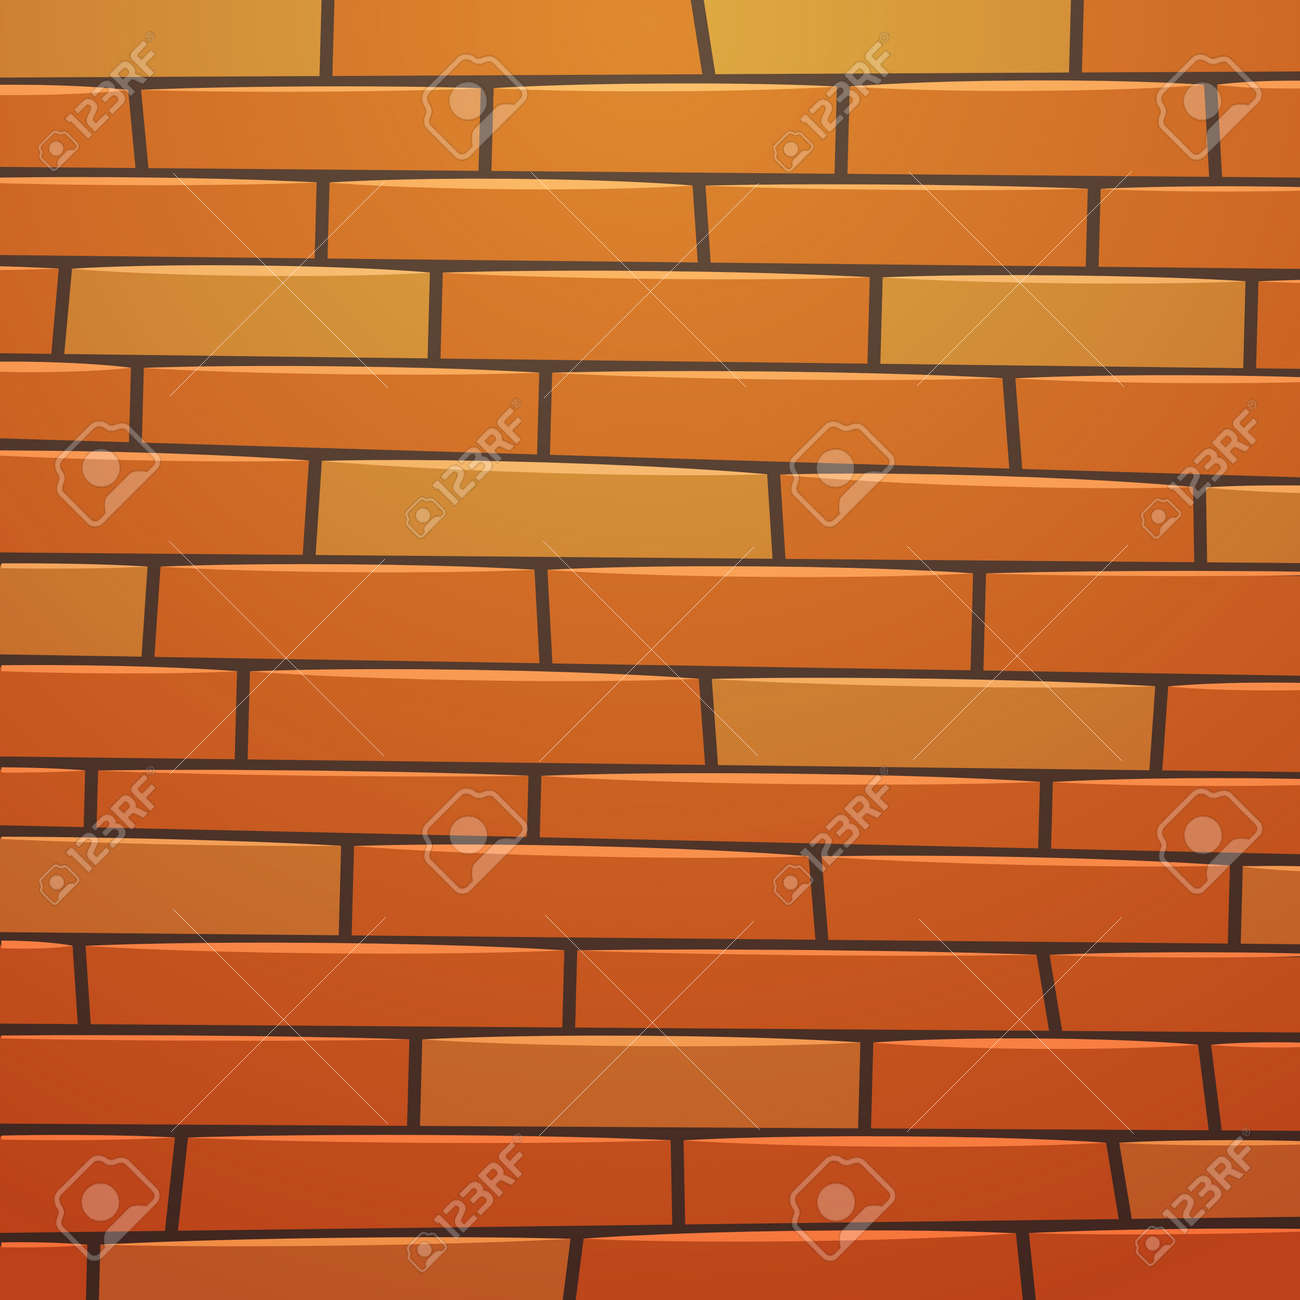 cartoon brick wall royalty free cliparts vectors and stock rh 123rf com cartoon brick wall free cartoon brick wallpaper